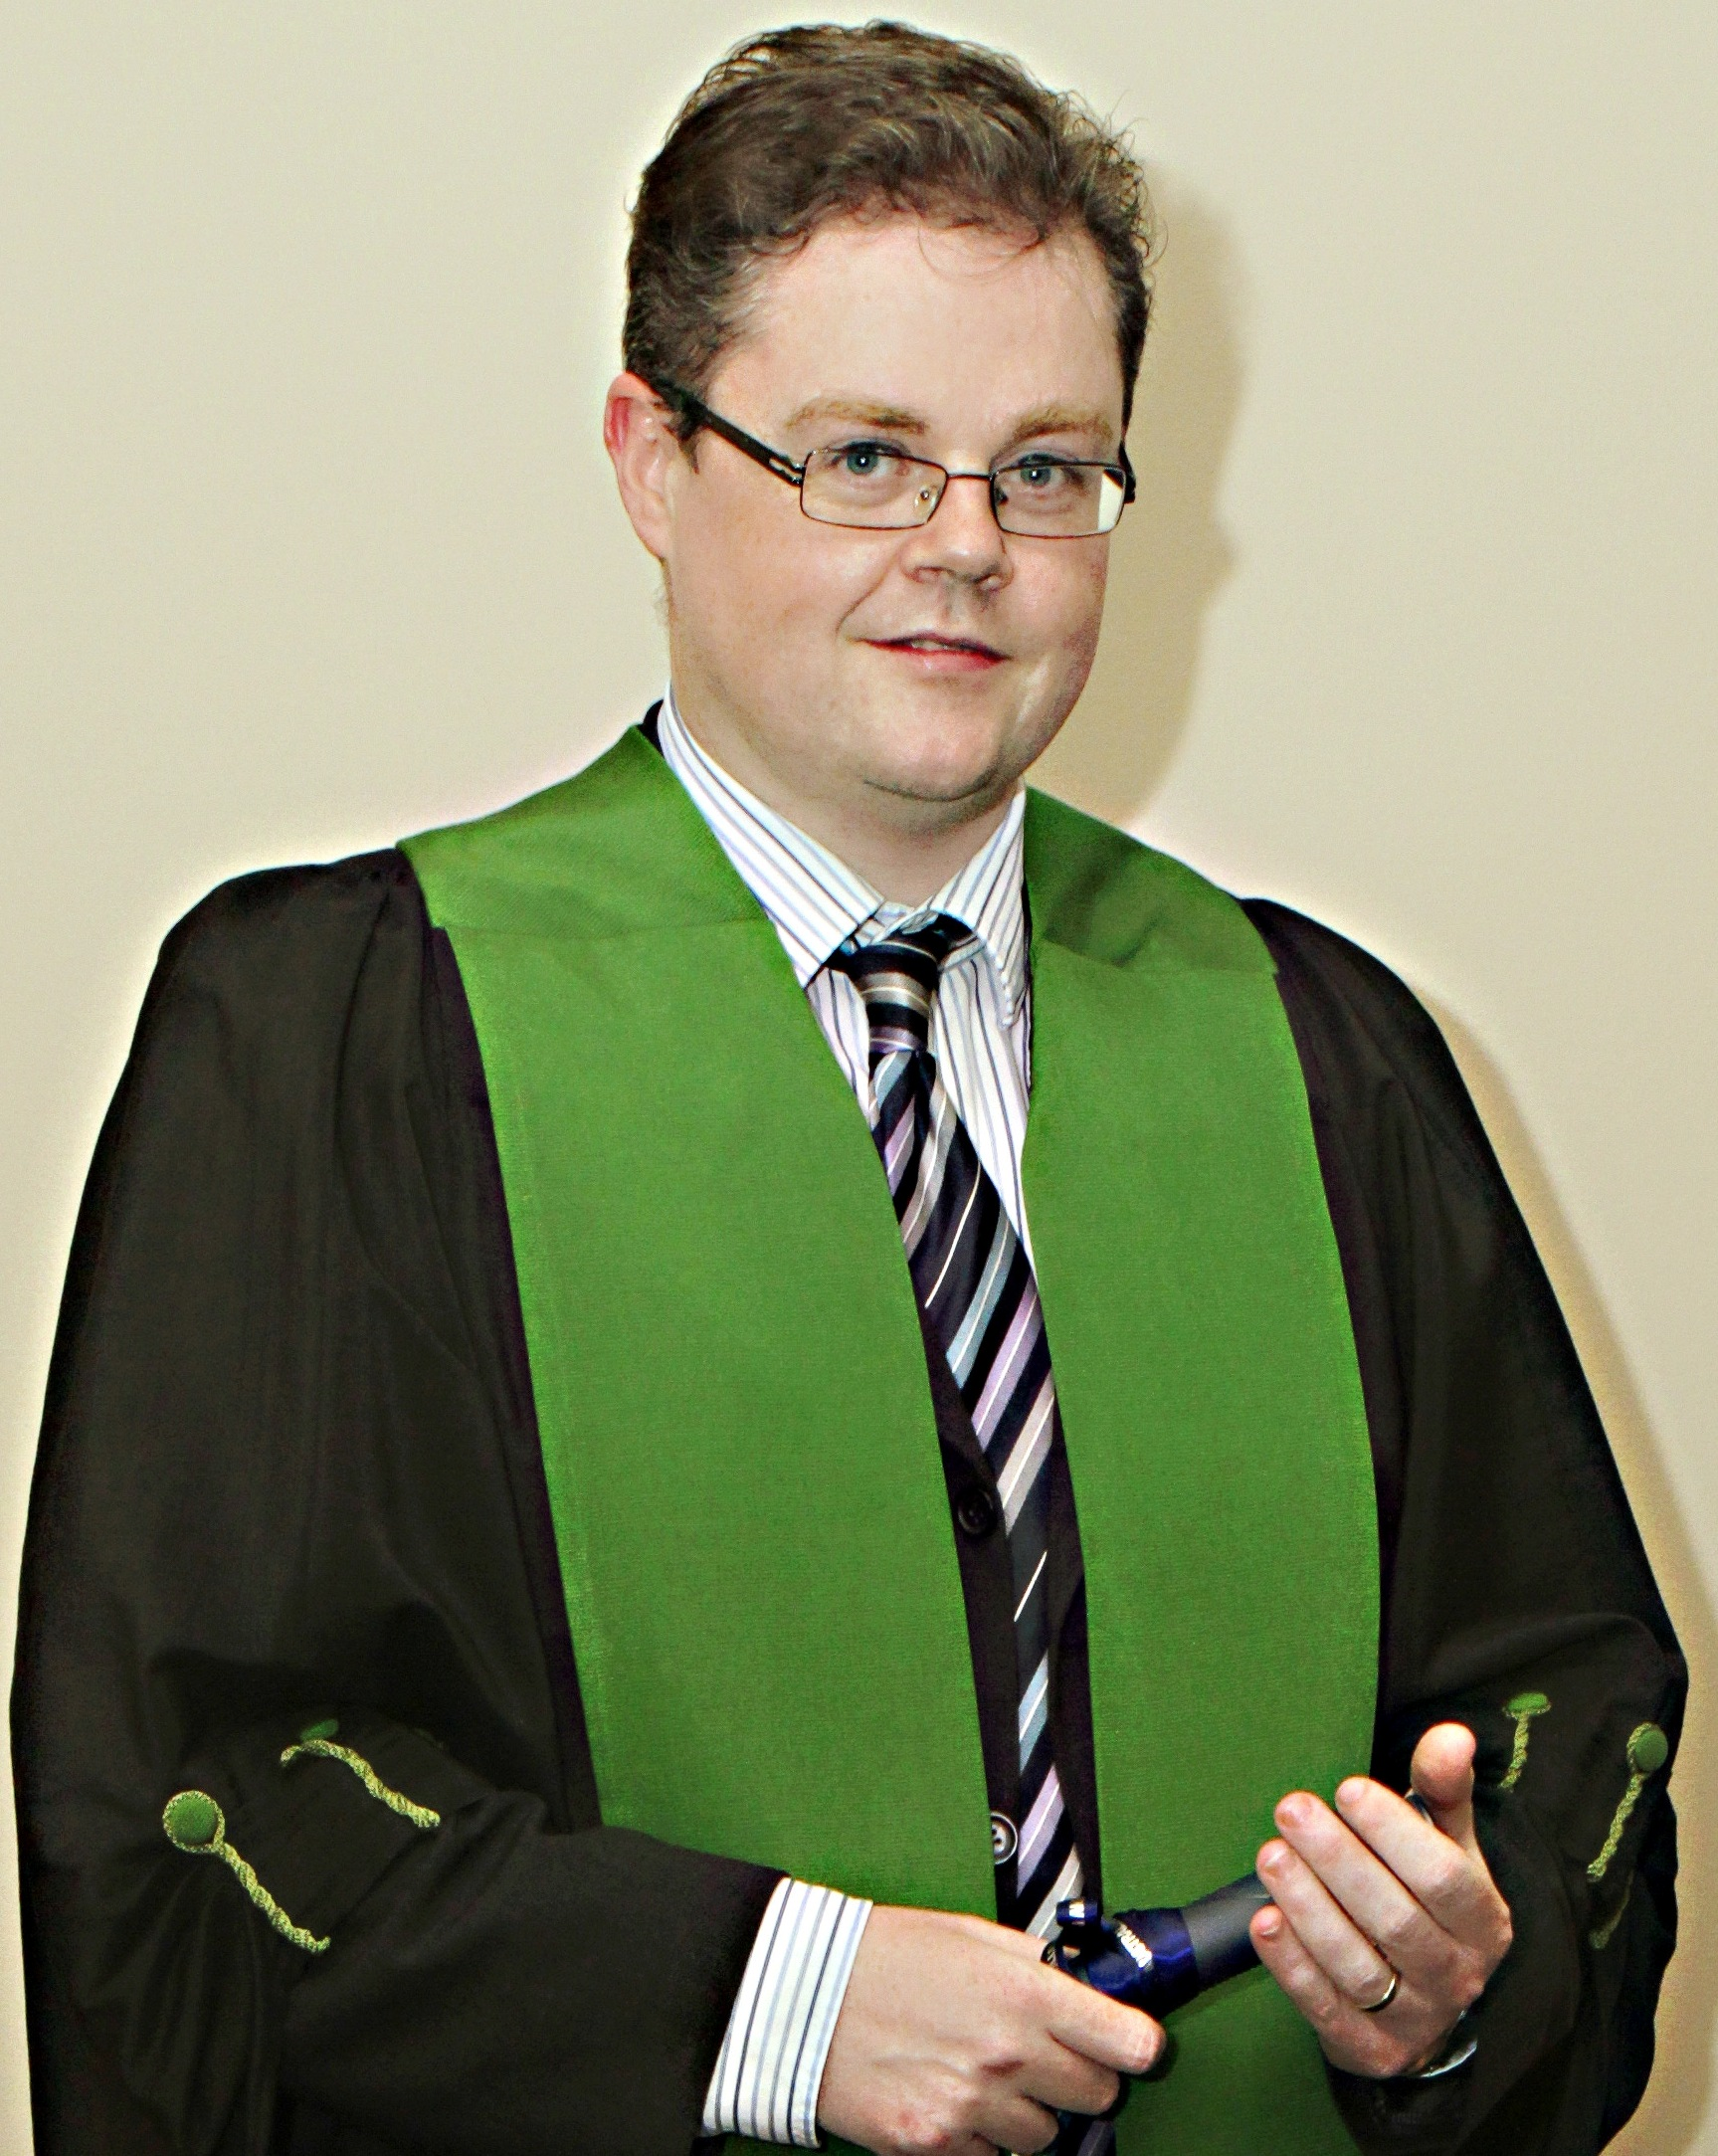 gerard adams asn events dr gerard adams studied medicine at the university of edinburgh in the uk after completing his mrcp he entered the specialist training in clinical oncology